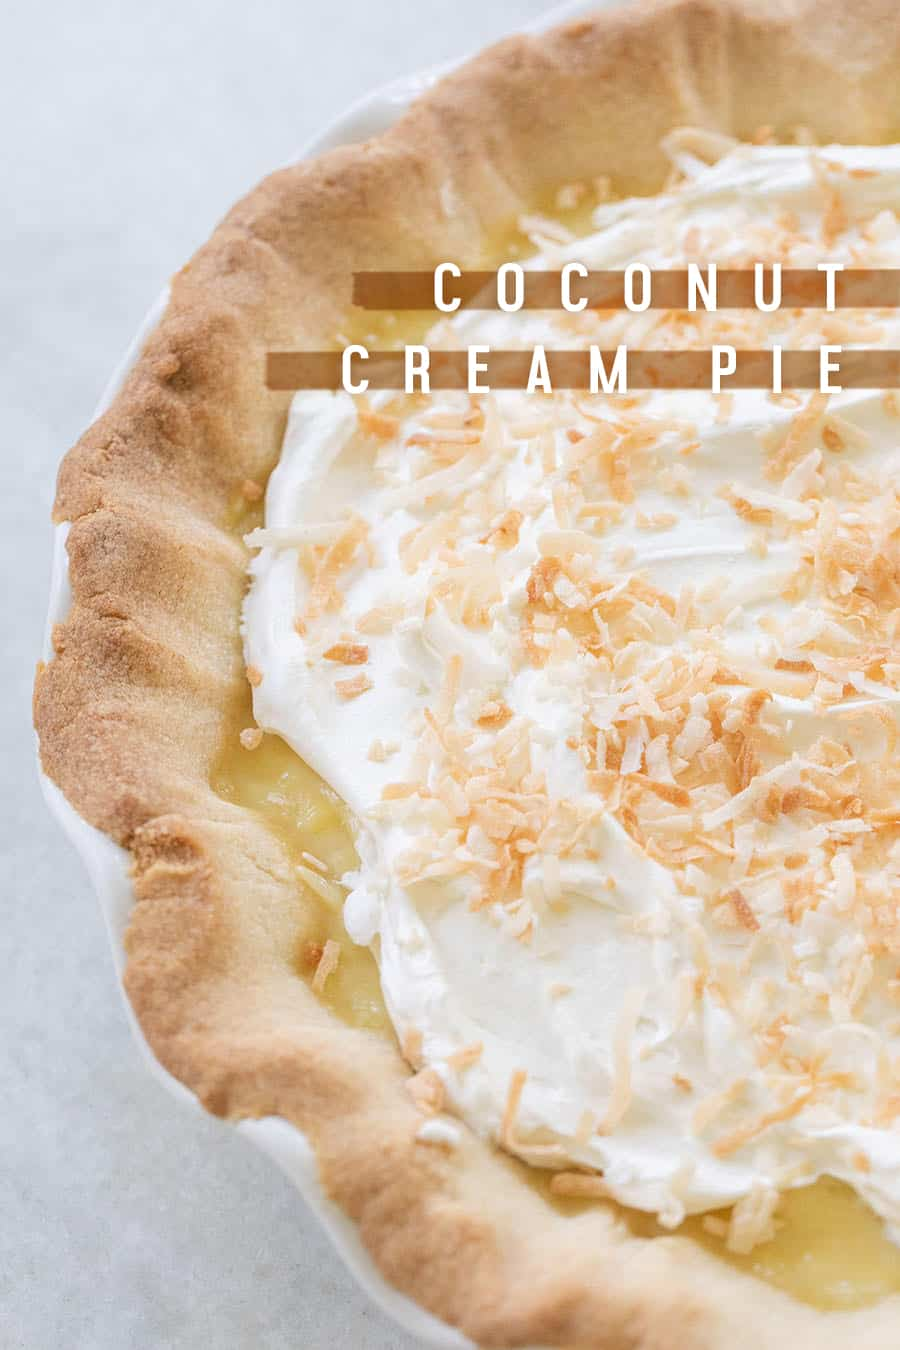 Coconut cream pie close up with whipped cream and toasted coconut.